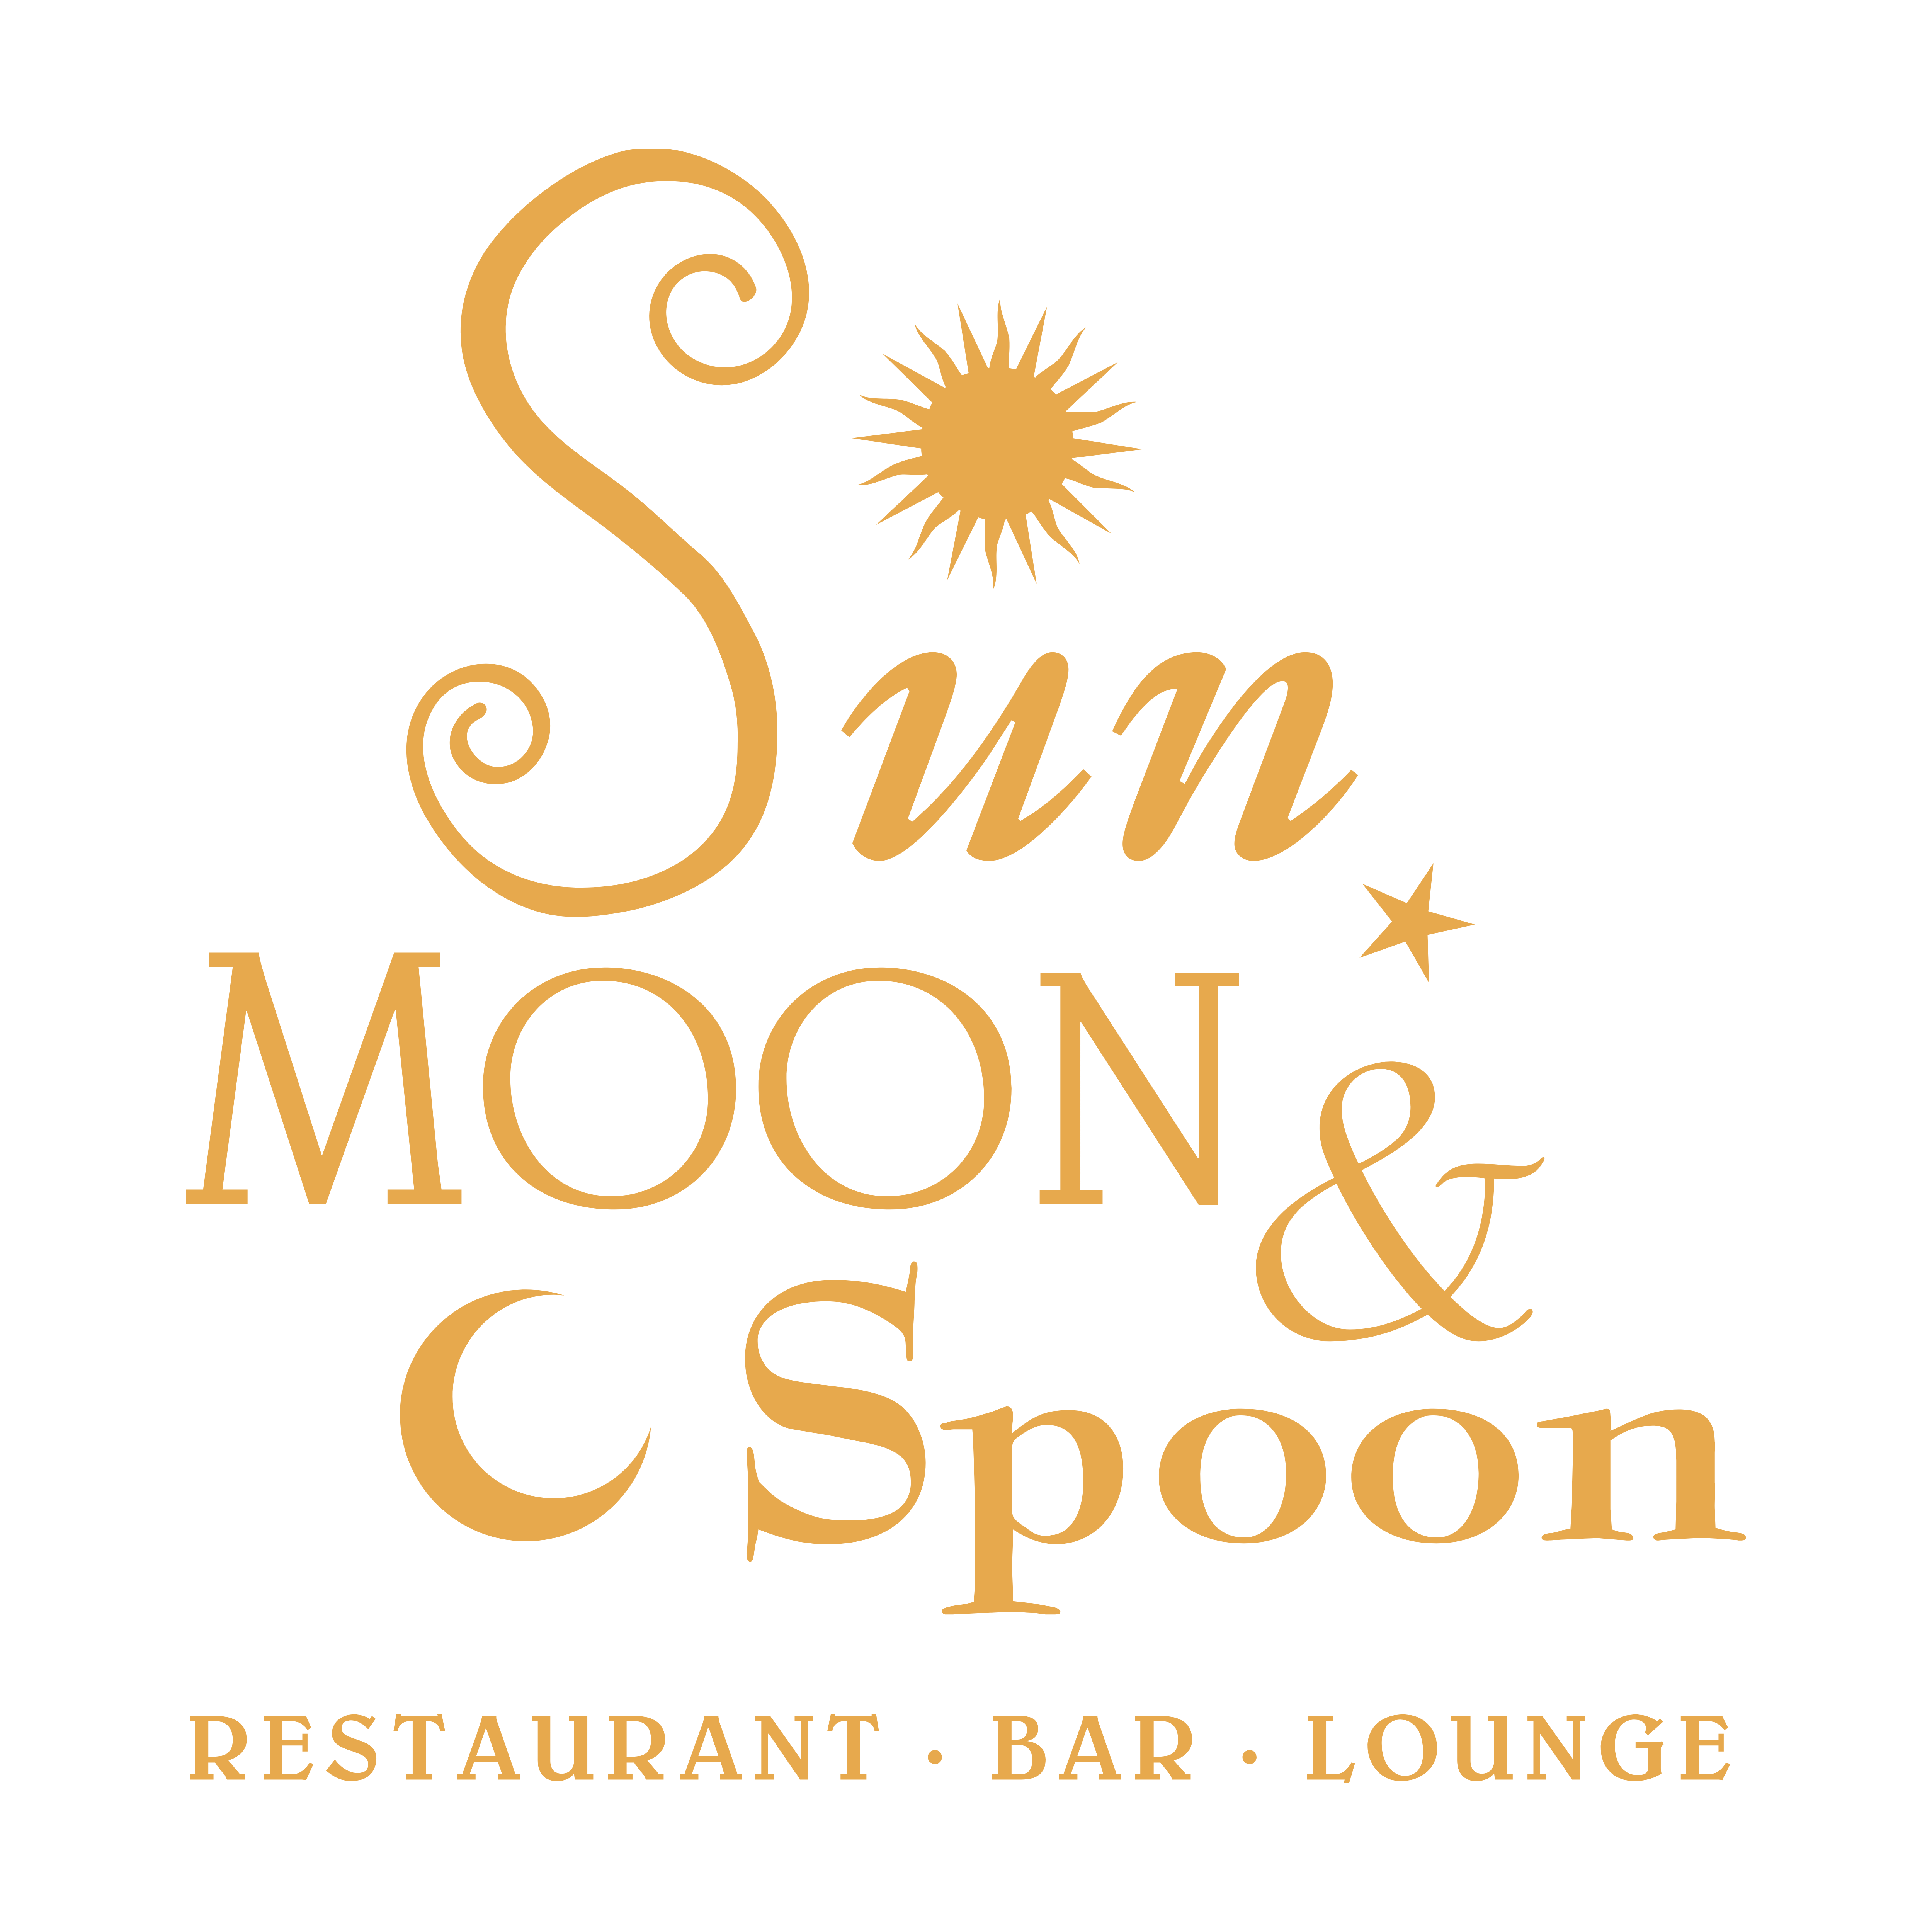 sun moon spoon logos download. Black Bedroom Furniture Sets. Home Design Ideas